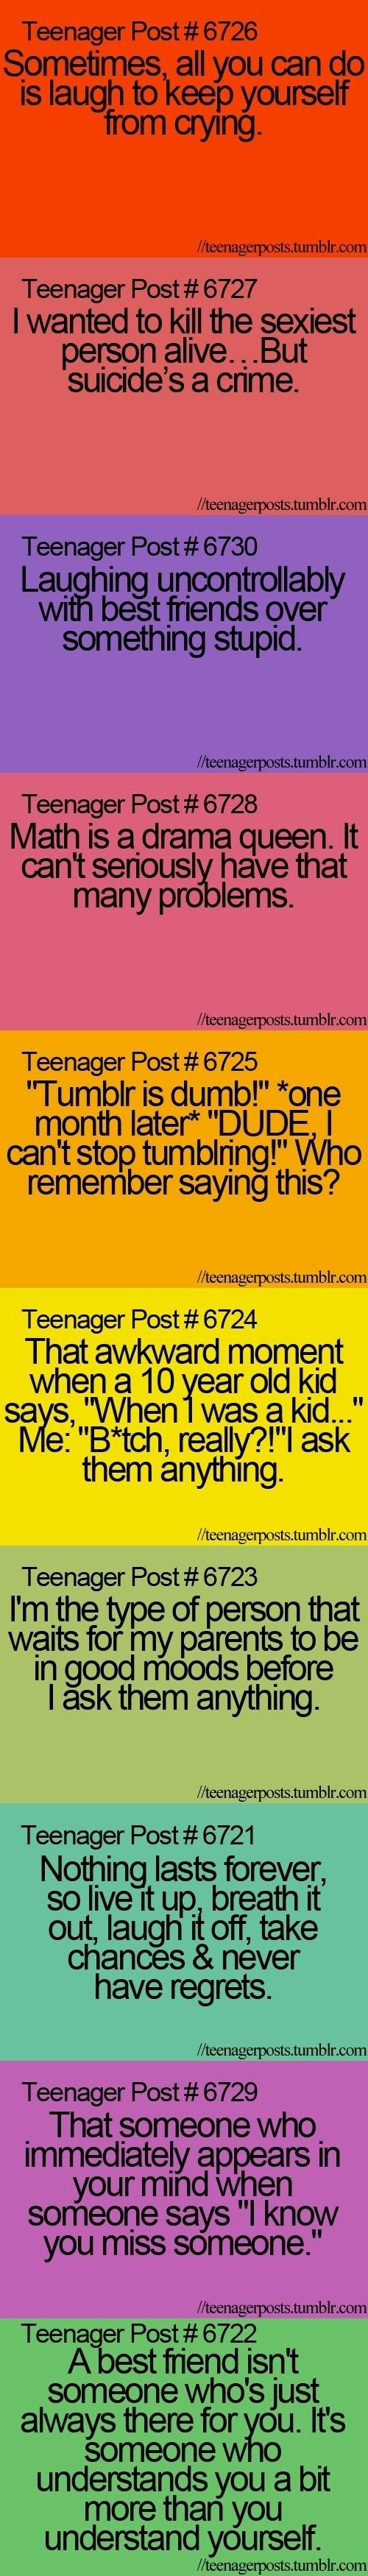 Teenager Posts - funny pictures / funny pics / lol /  #humor #funny #funnypictures #funnypics